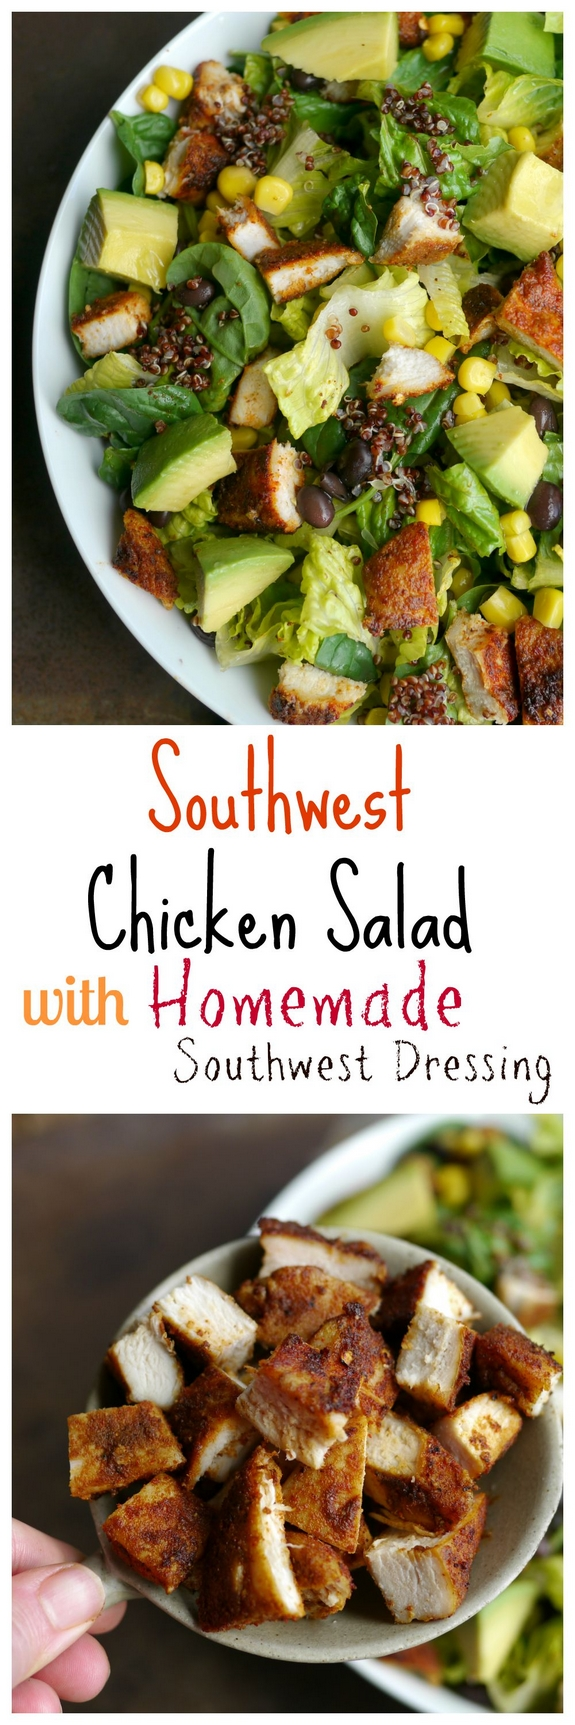 Southwest Chicken Salad with Homemade Southwest Dressing so delicious